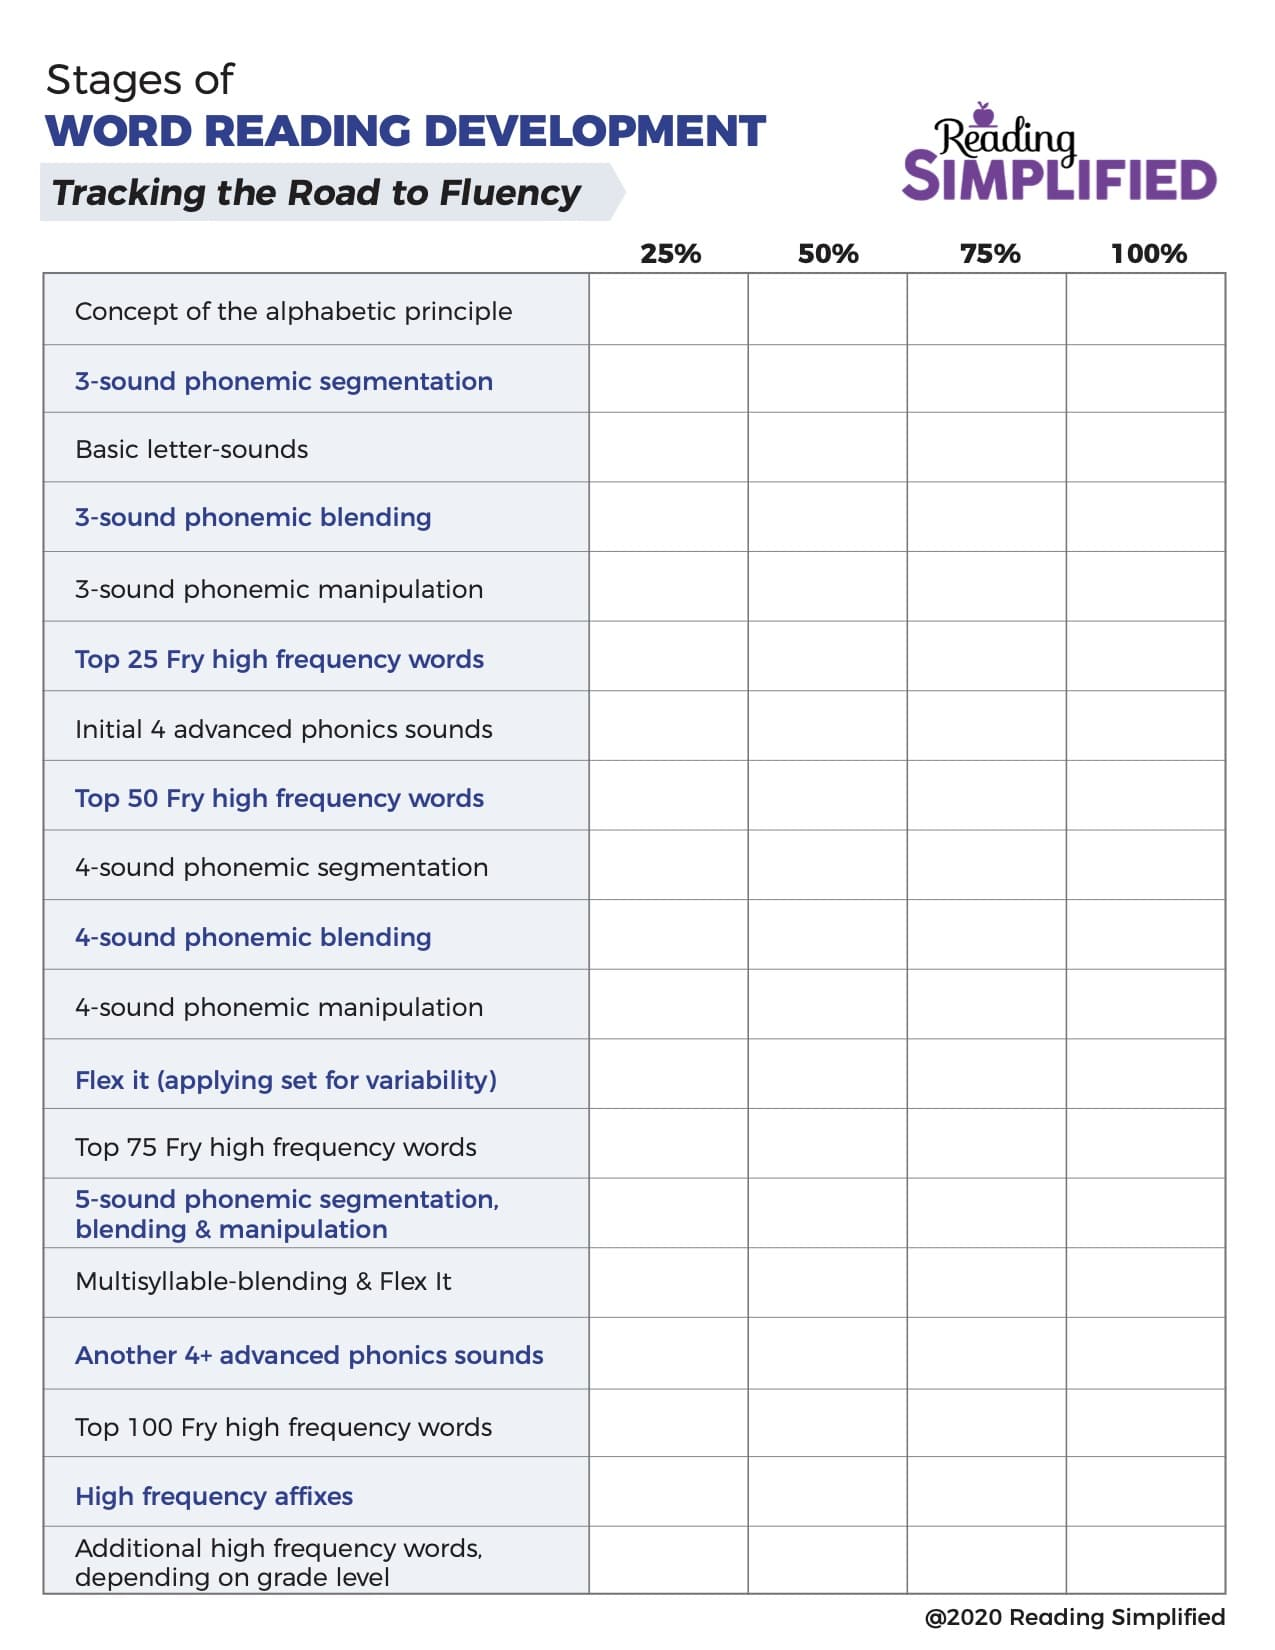 Tracking the Road to Fluency chart